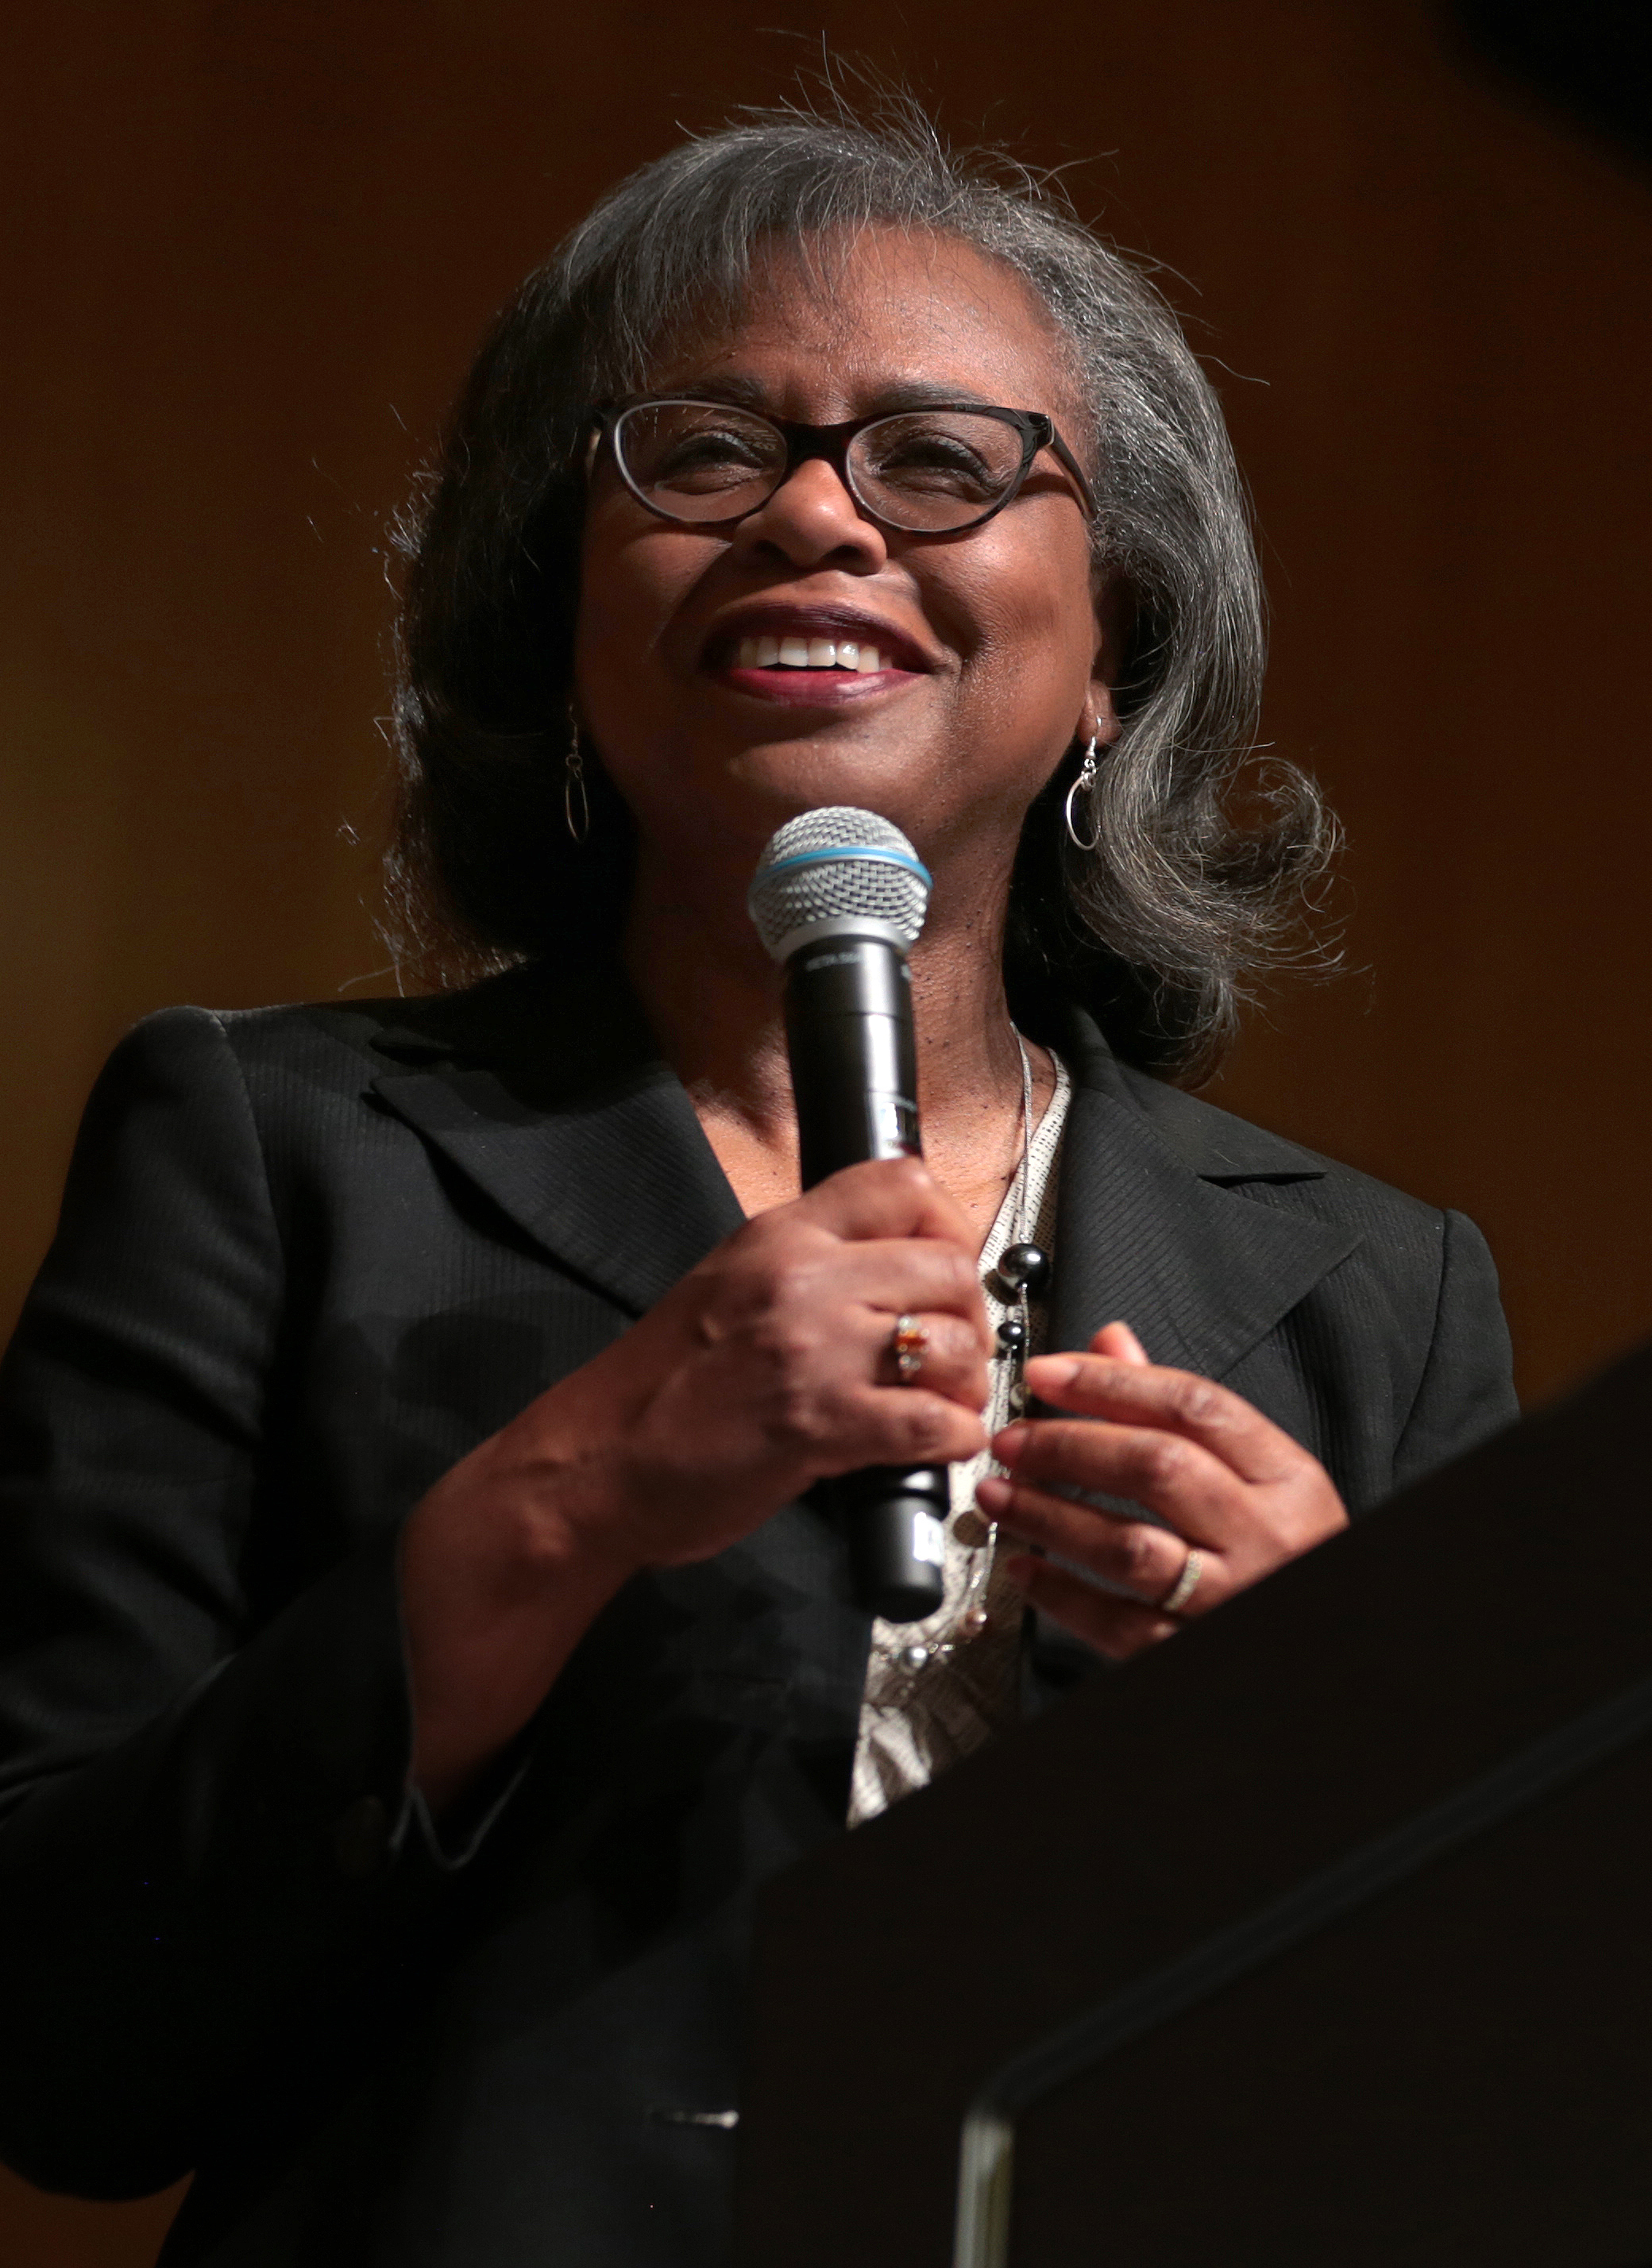 Anita hill case on sexual harassment